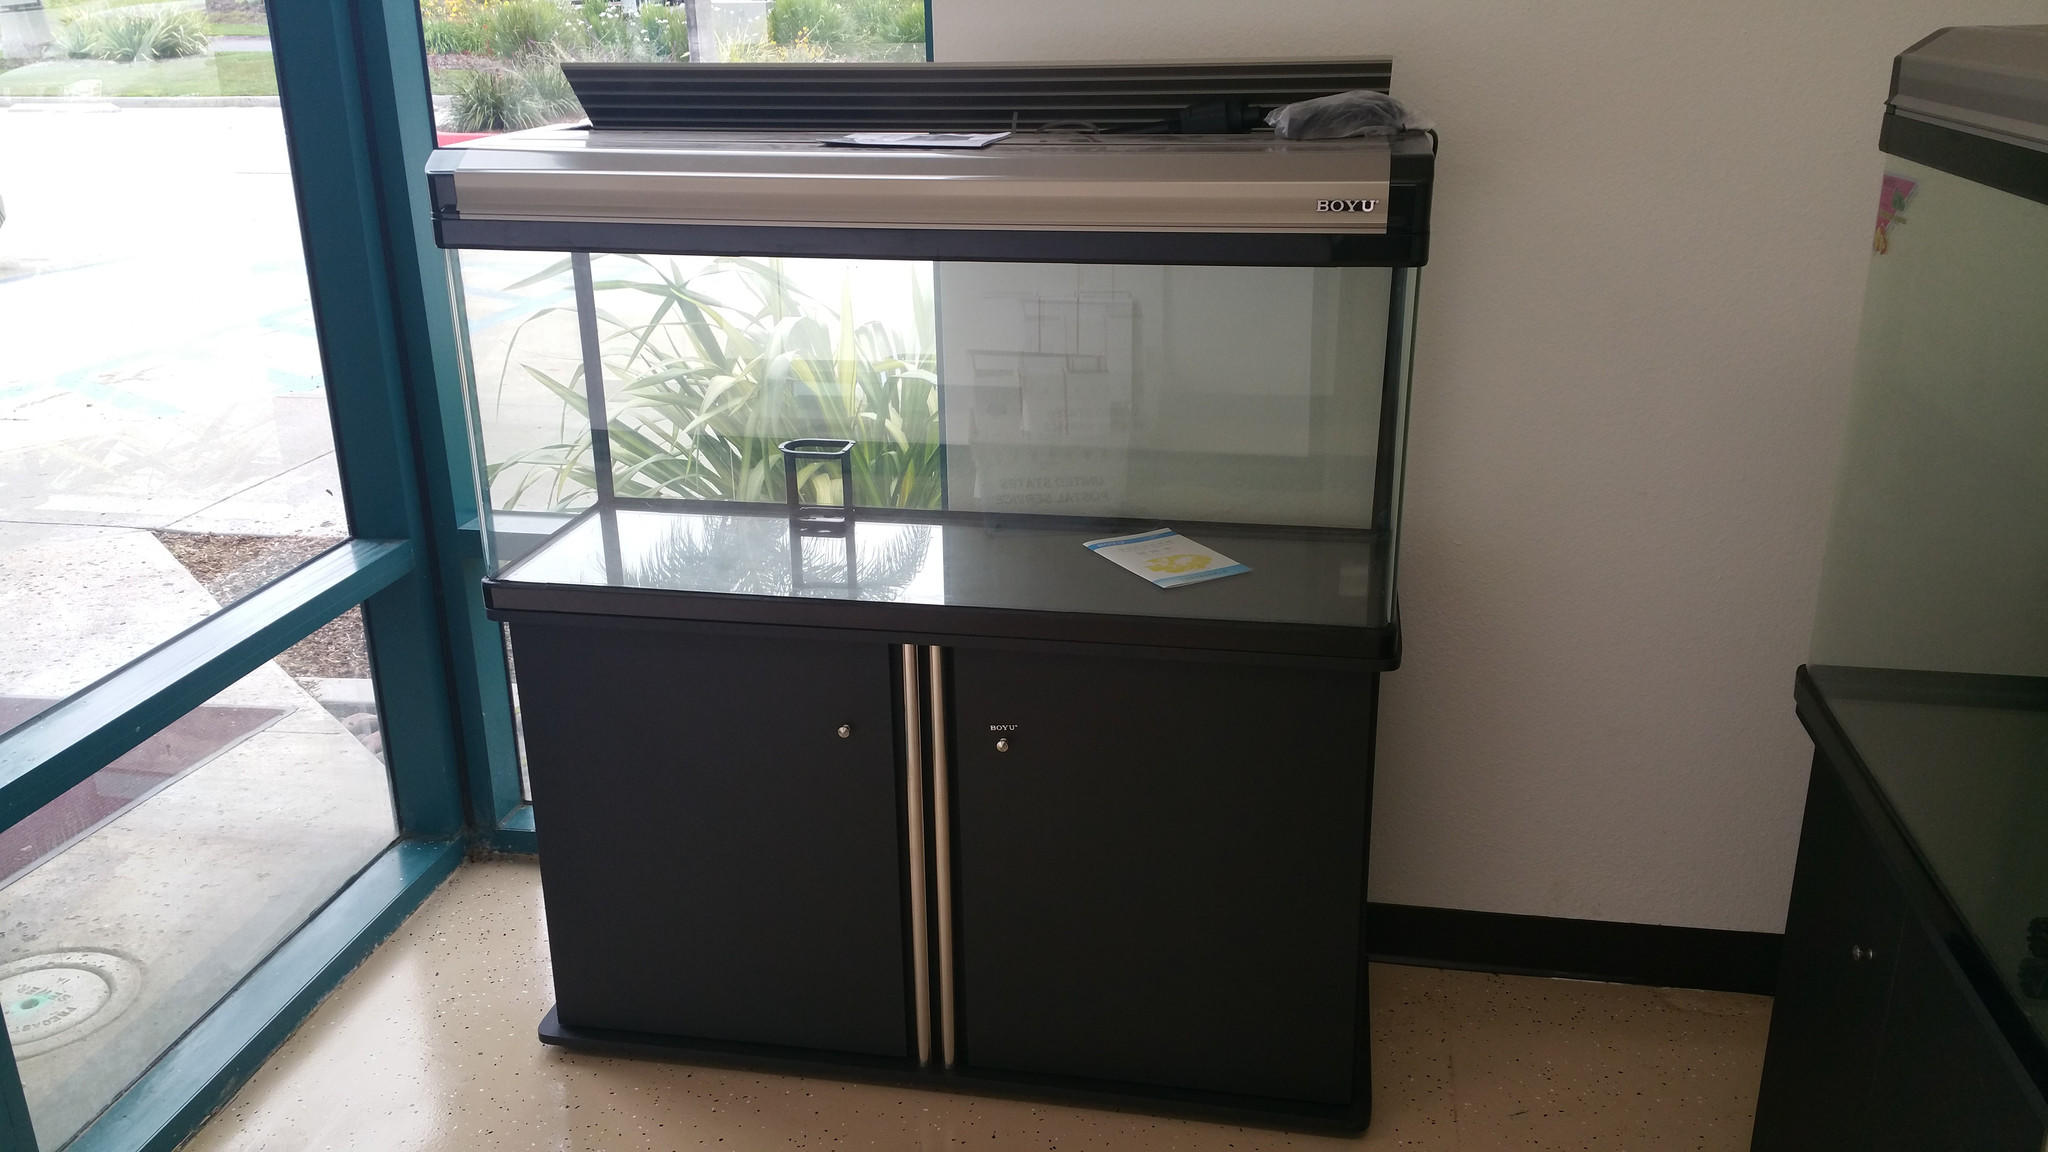 65 gallon aquarium reef fish tank w t8 from for 65 gallon fish tank